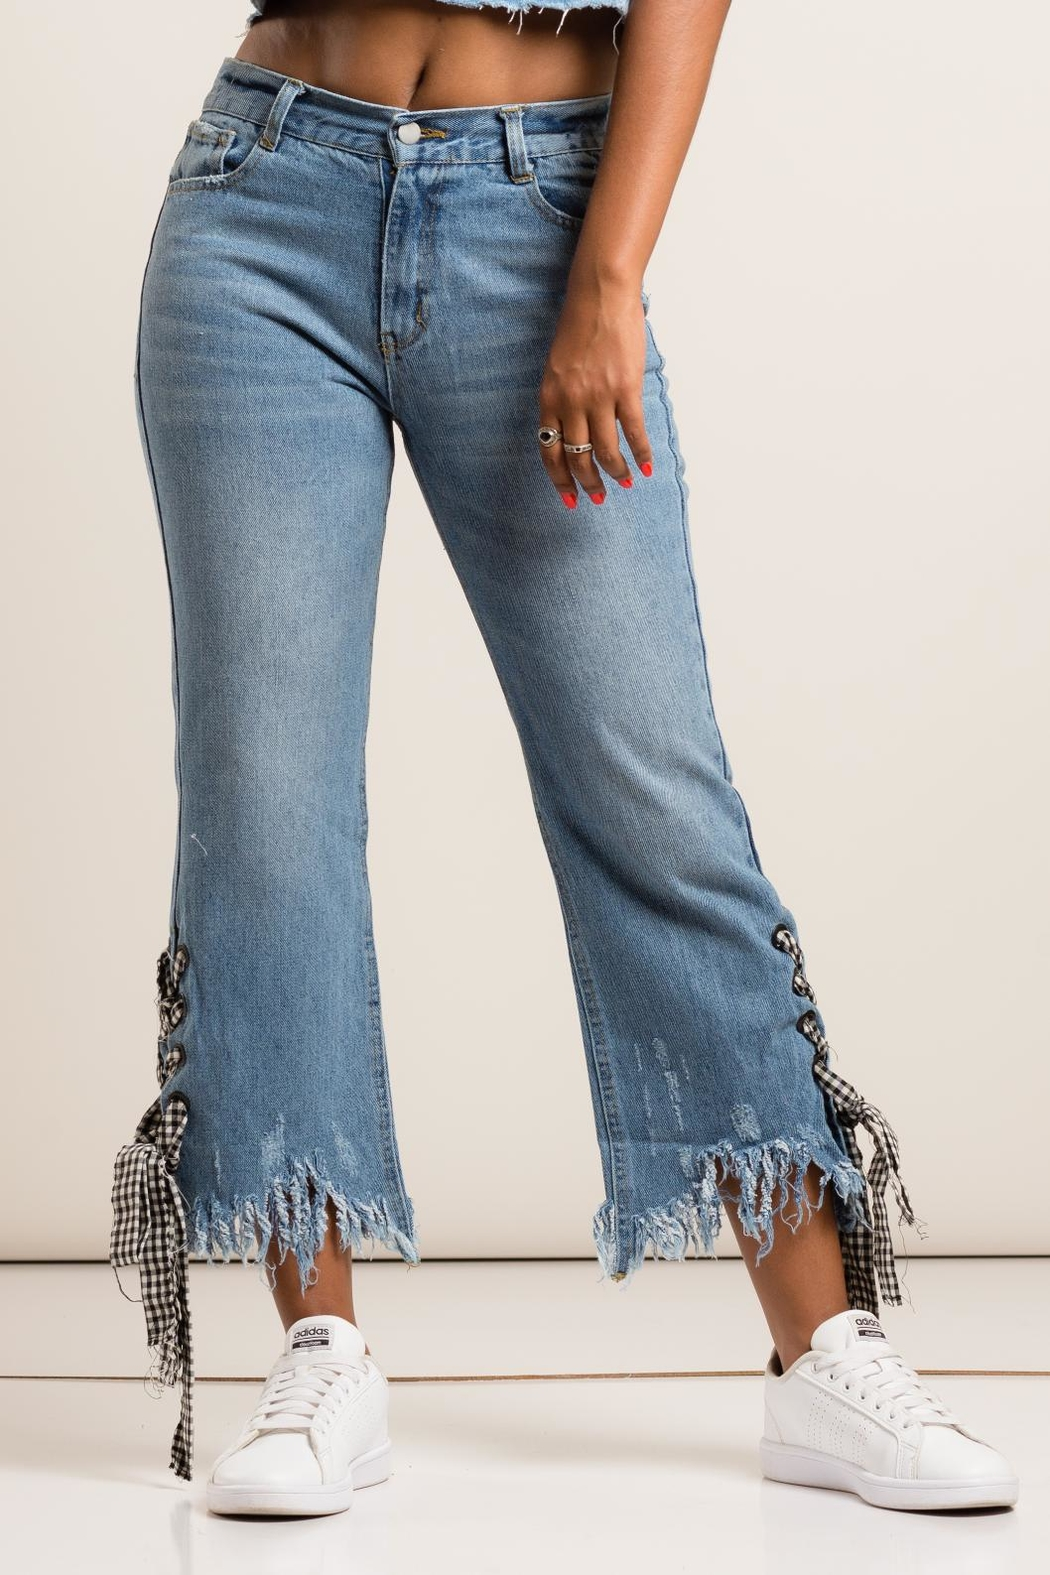 36 POINT 5 Checkered Detail Denim Jeans - Side Cropped Image